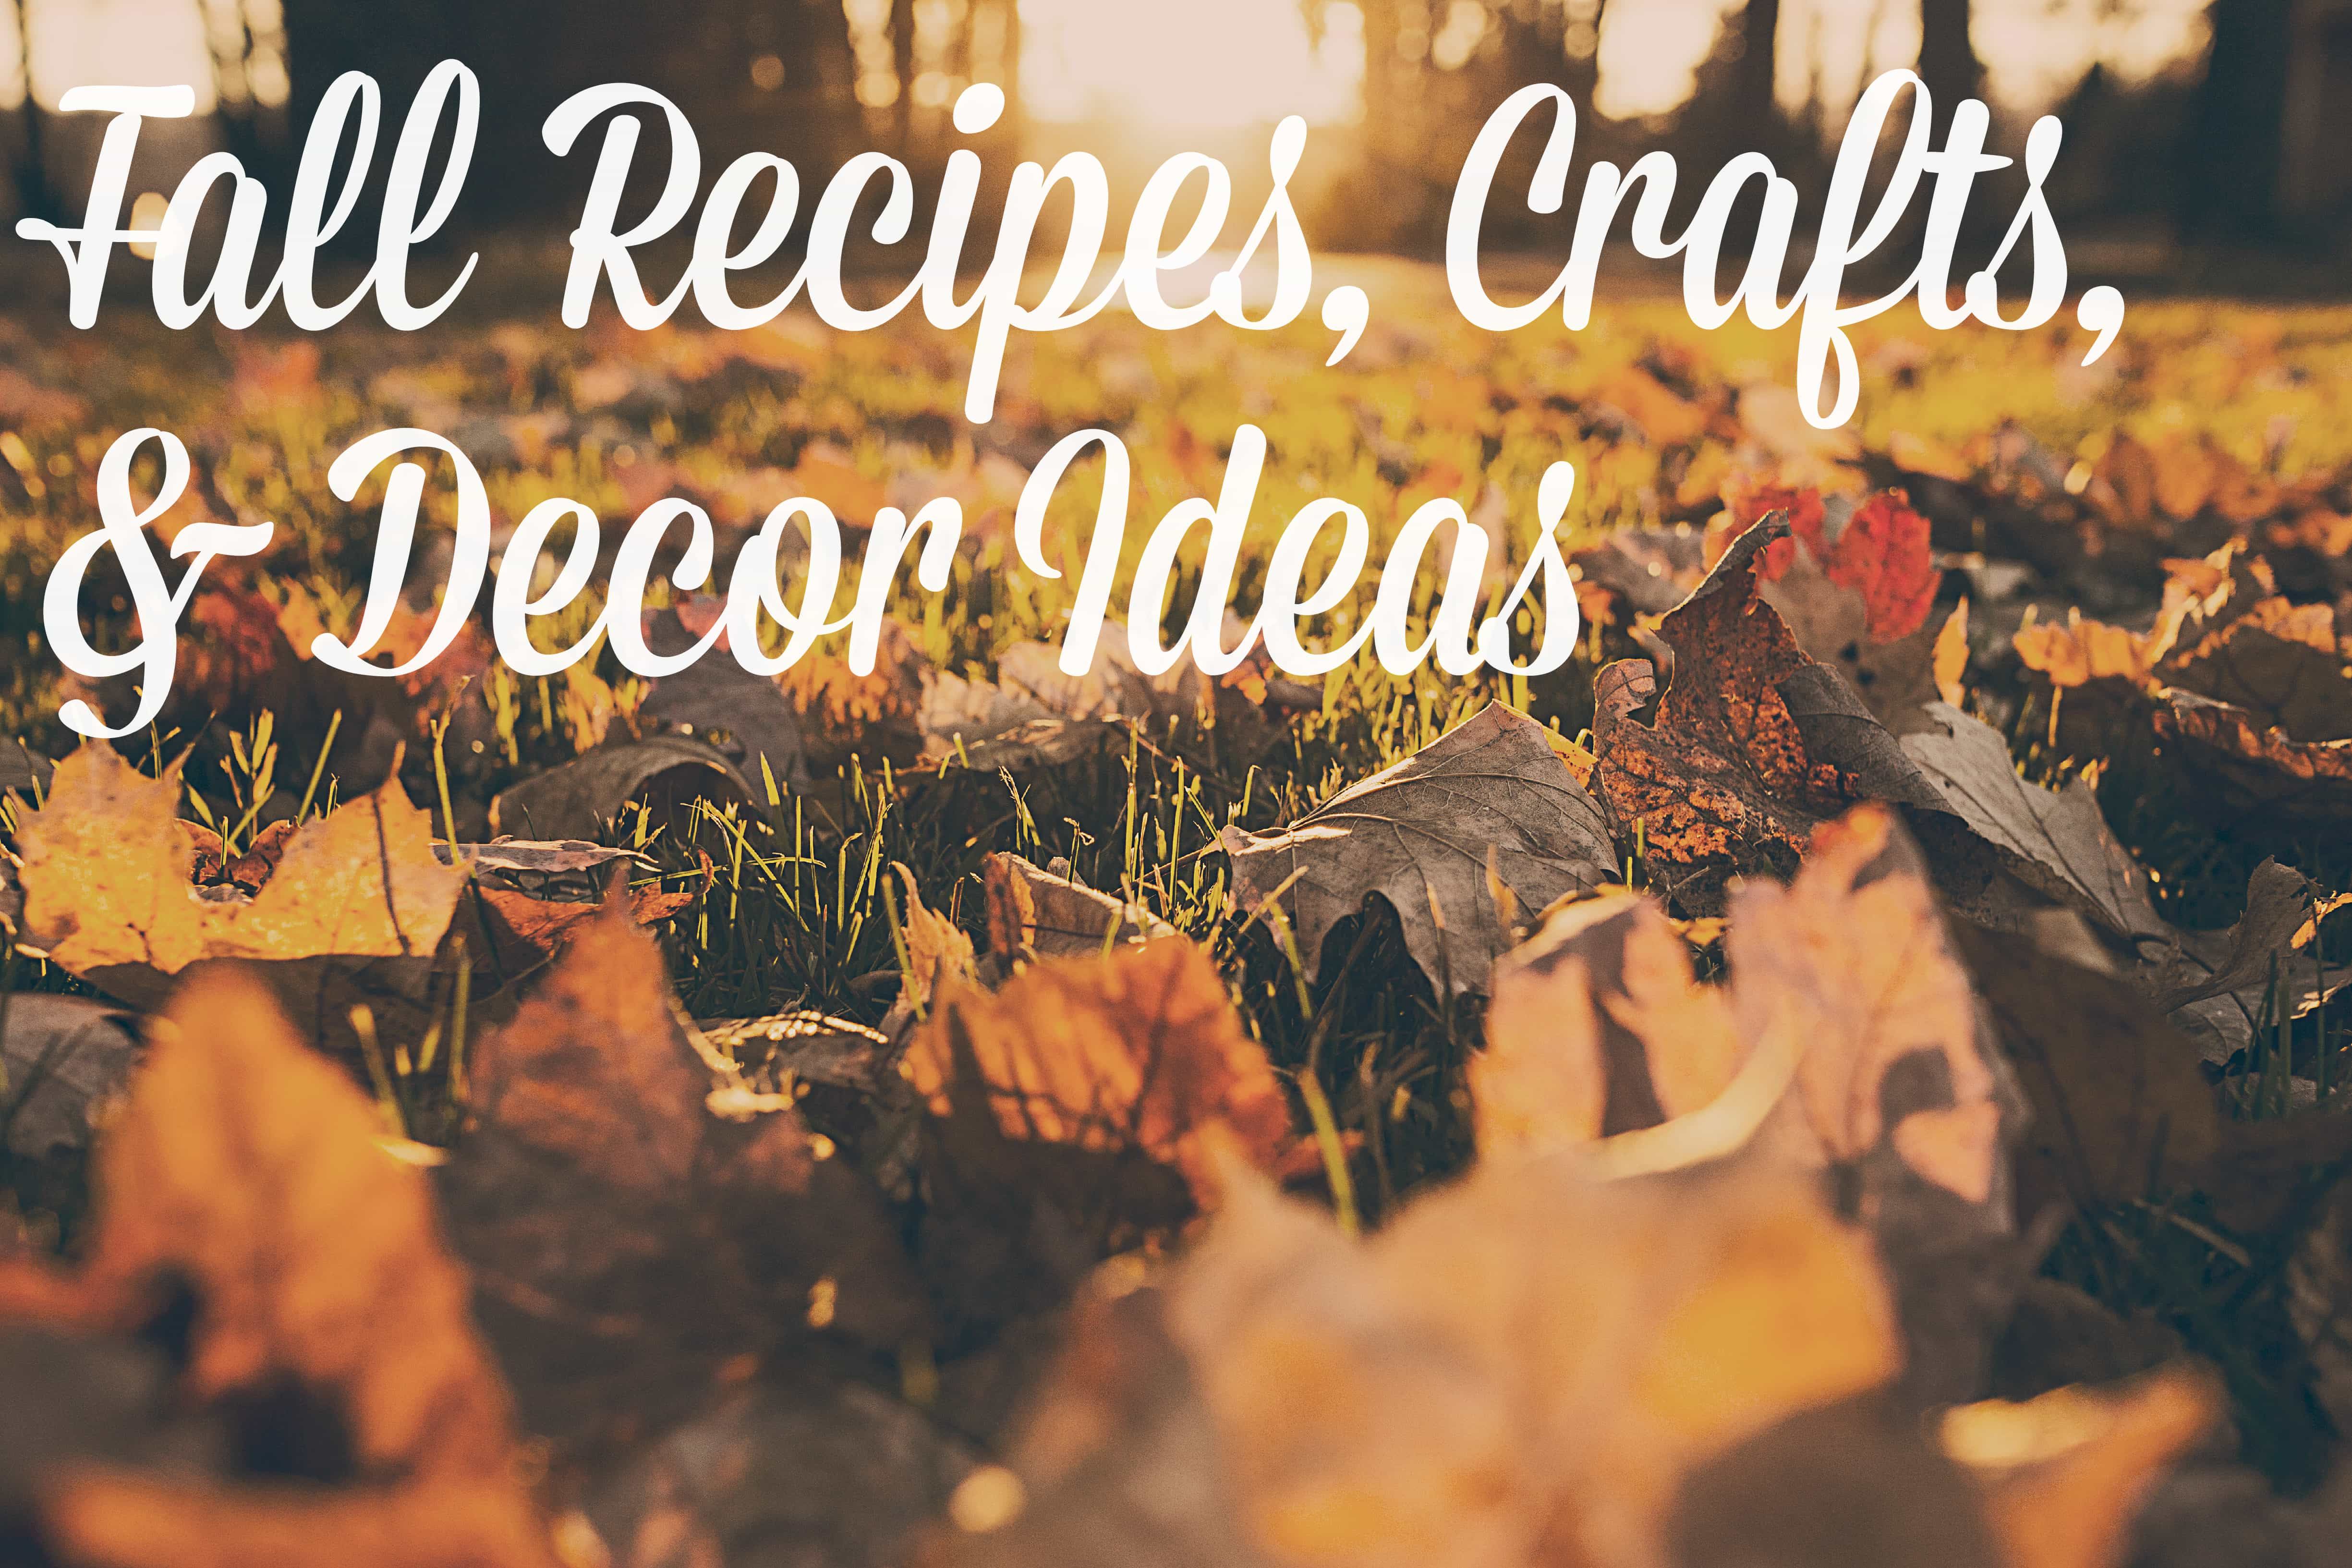 fall recipes crafts and decor ideas